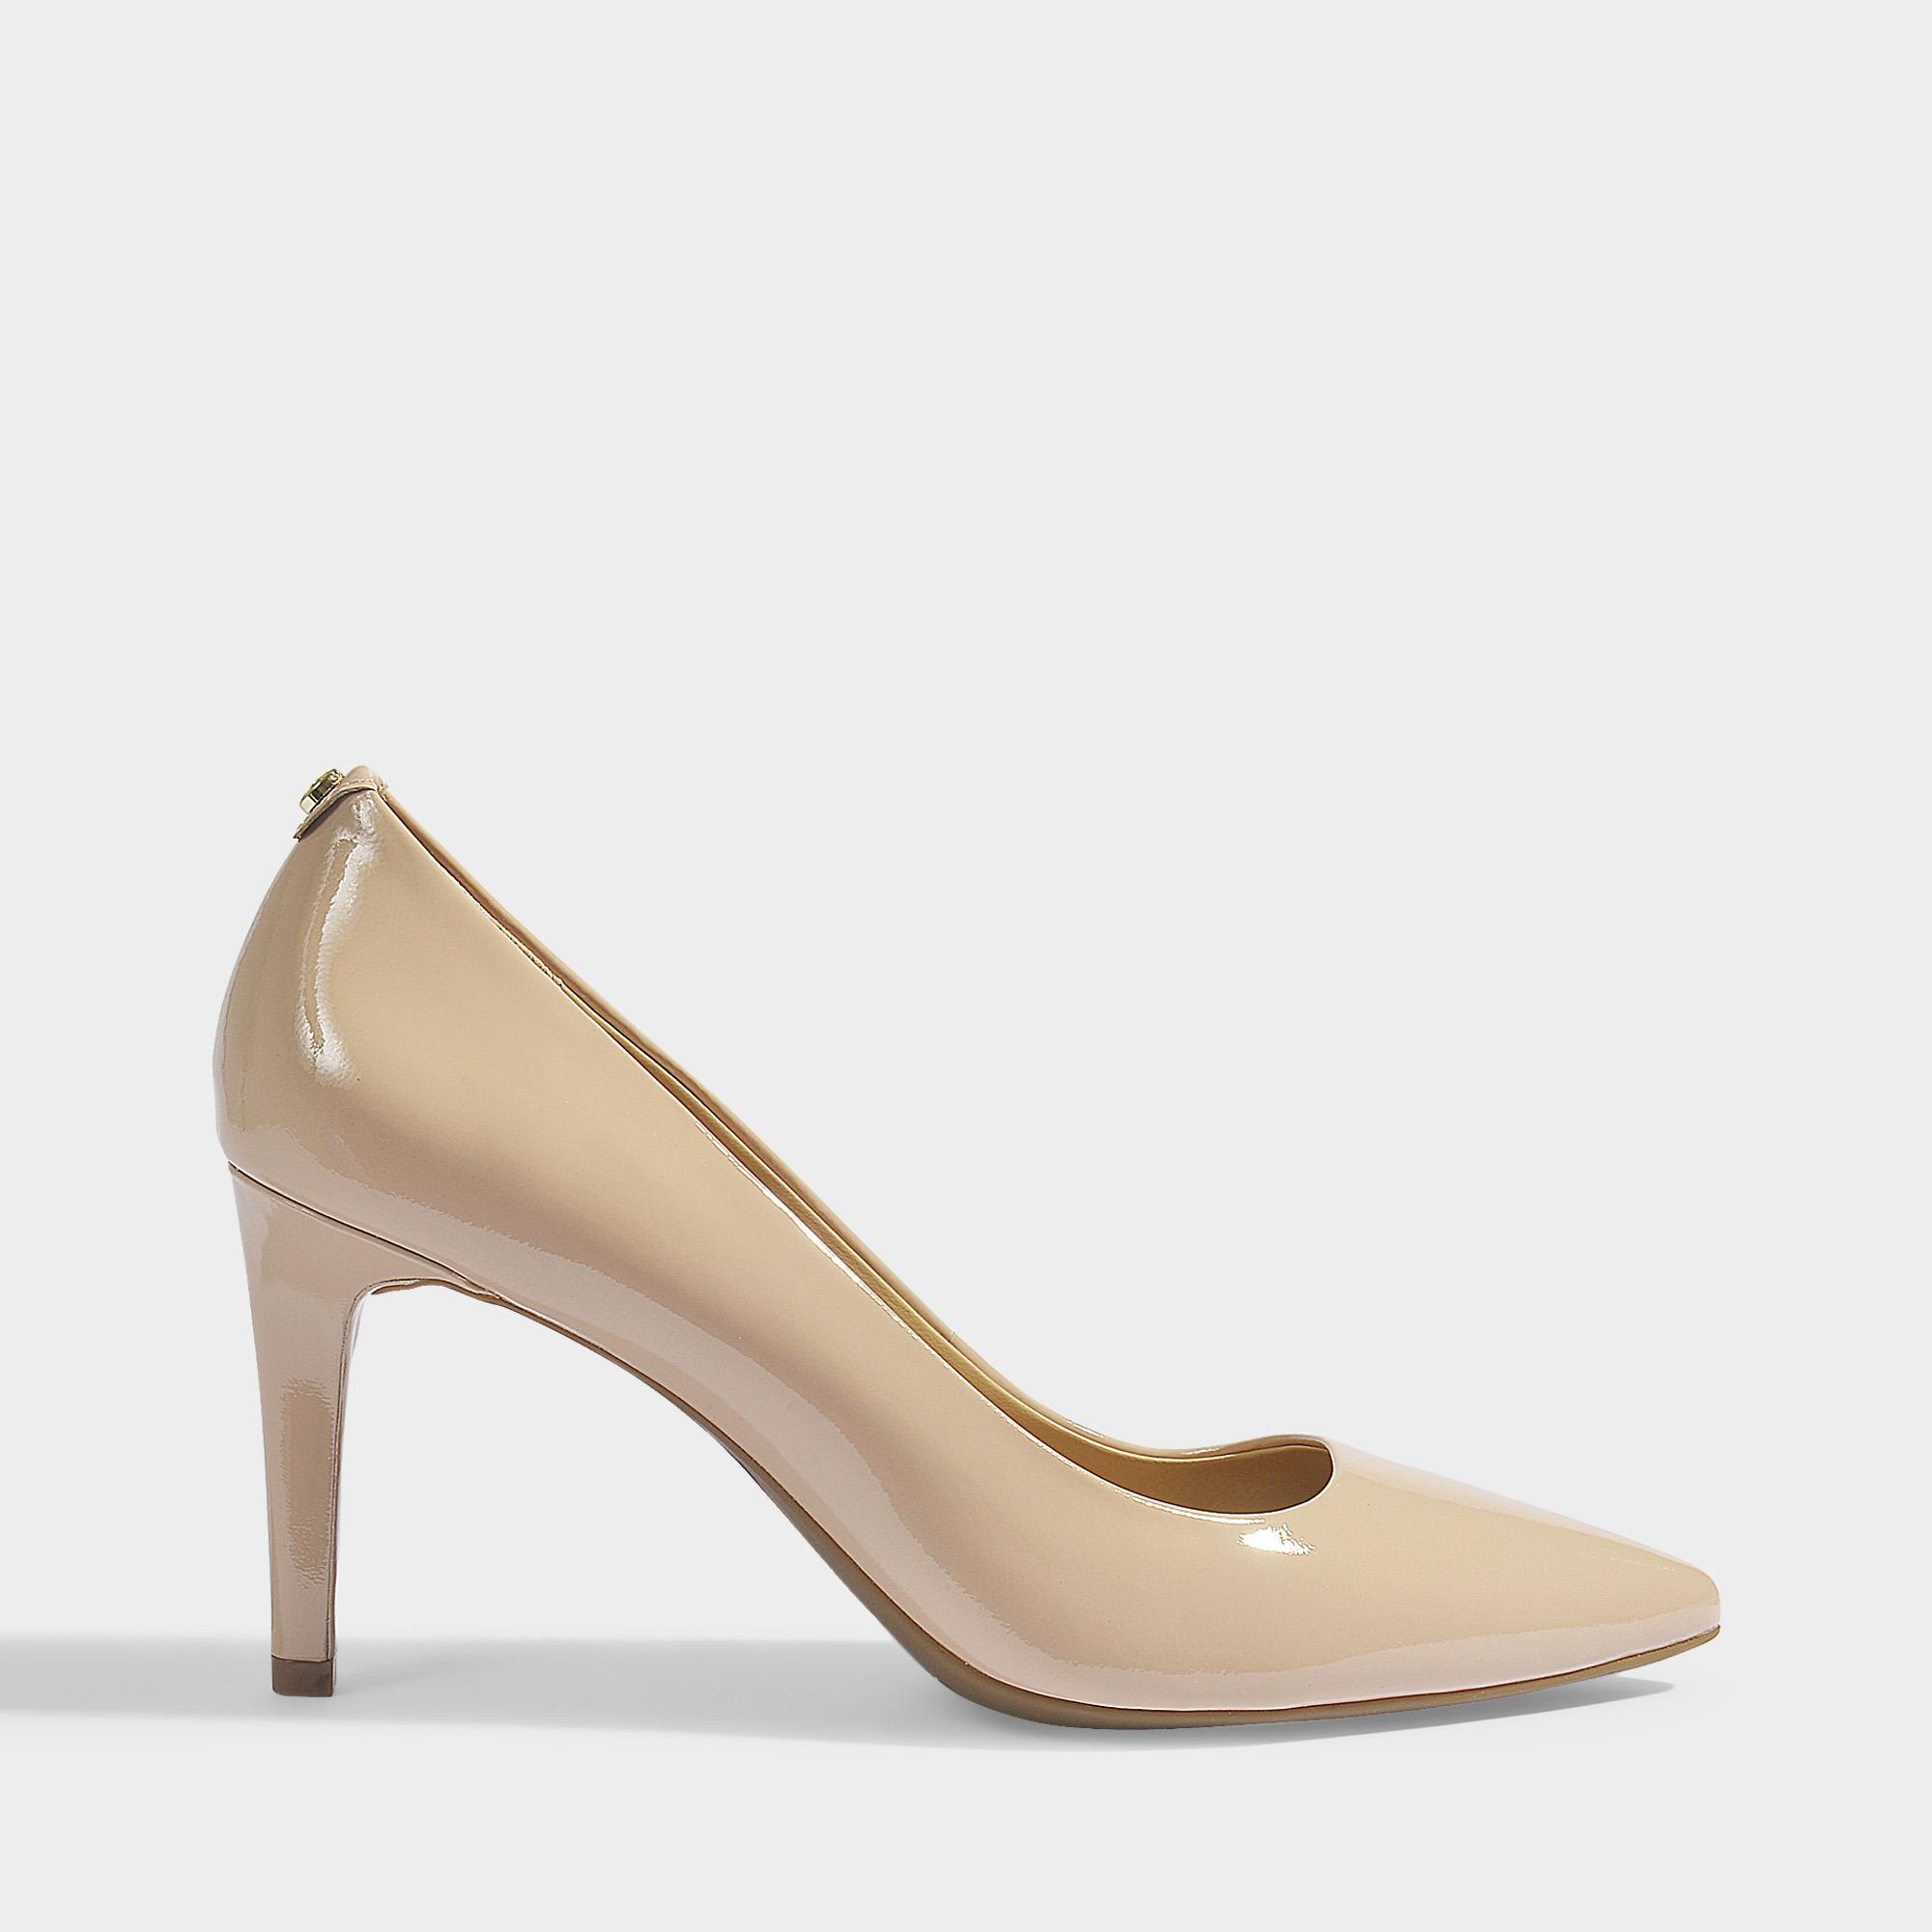 b8995545c44d MICHAEL Michael Kors. Women s Pink Dorothy Flex Pumps In Light Blush Patent  Leather